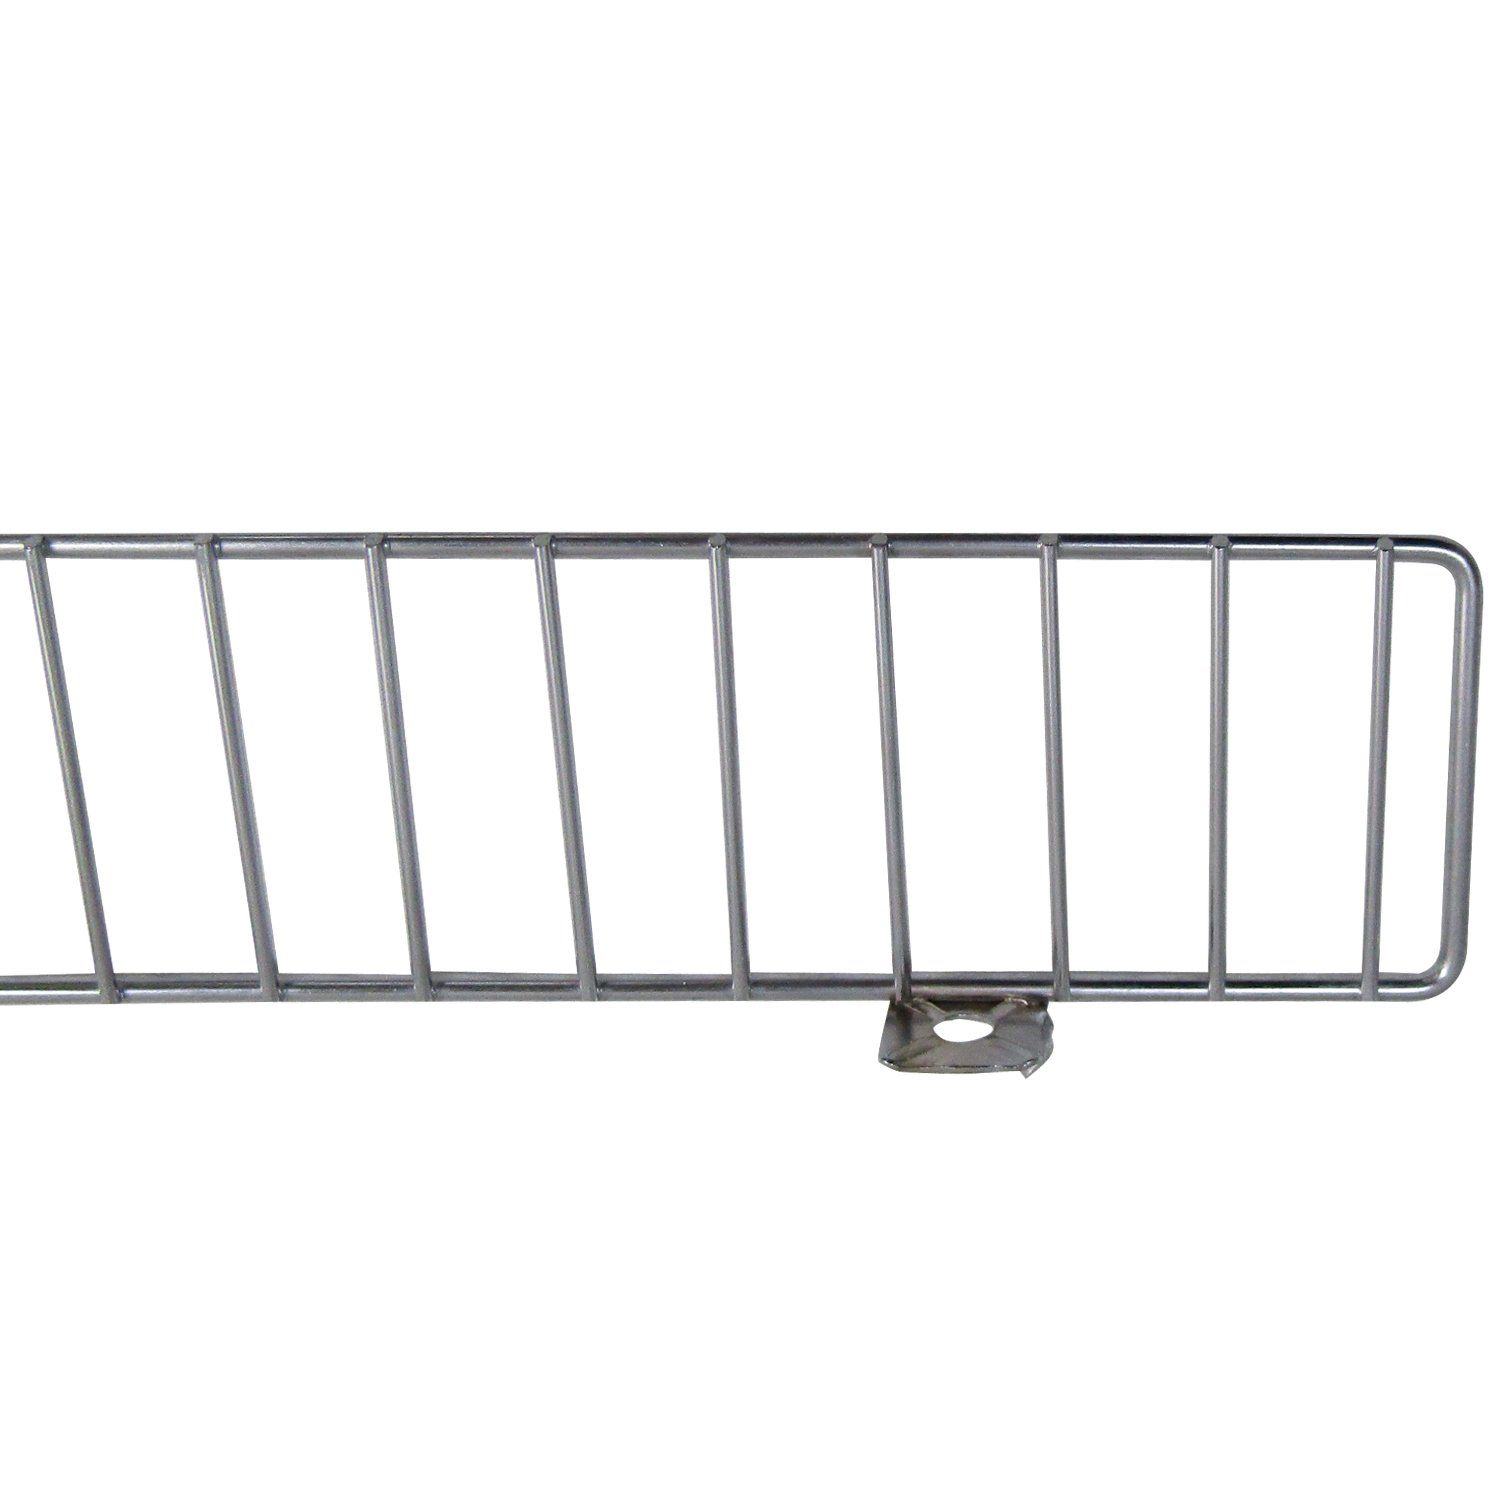 AWP CA-FDF348CN-1 Chrome Front Fence Lozier/Madix, 3 x 48 Size, Chrome, (Pack of 25) by AWP (Image #2)